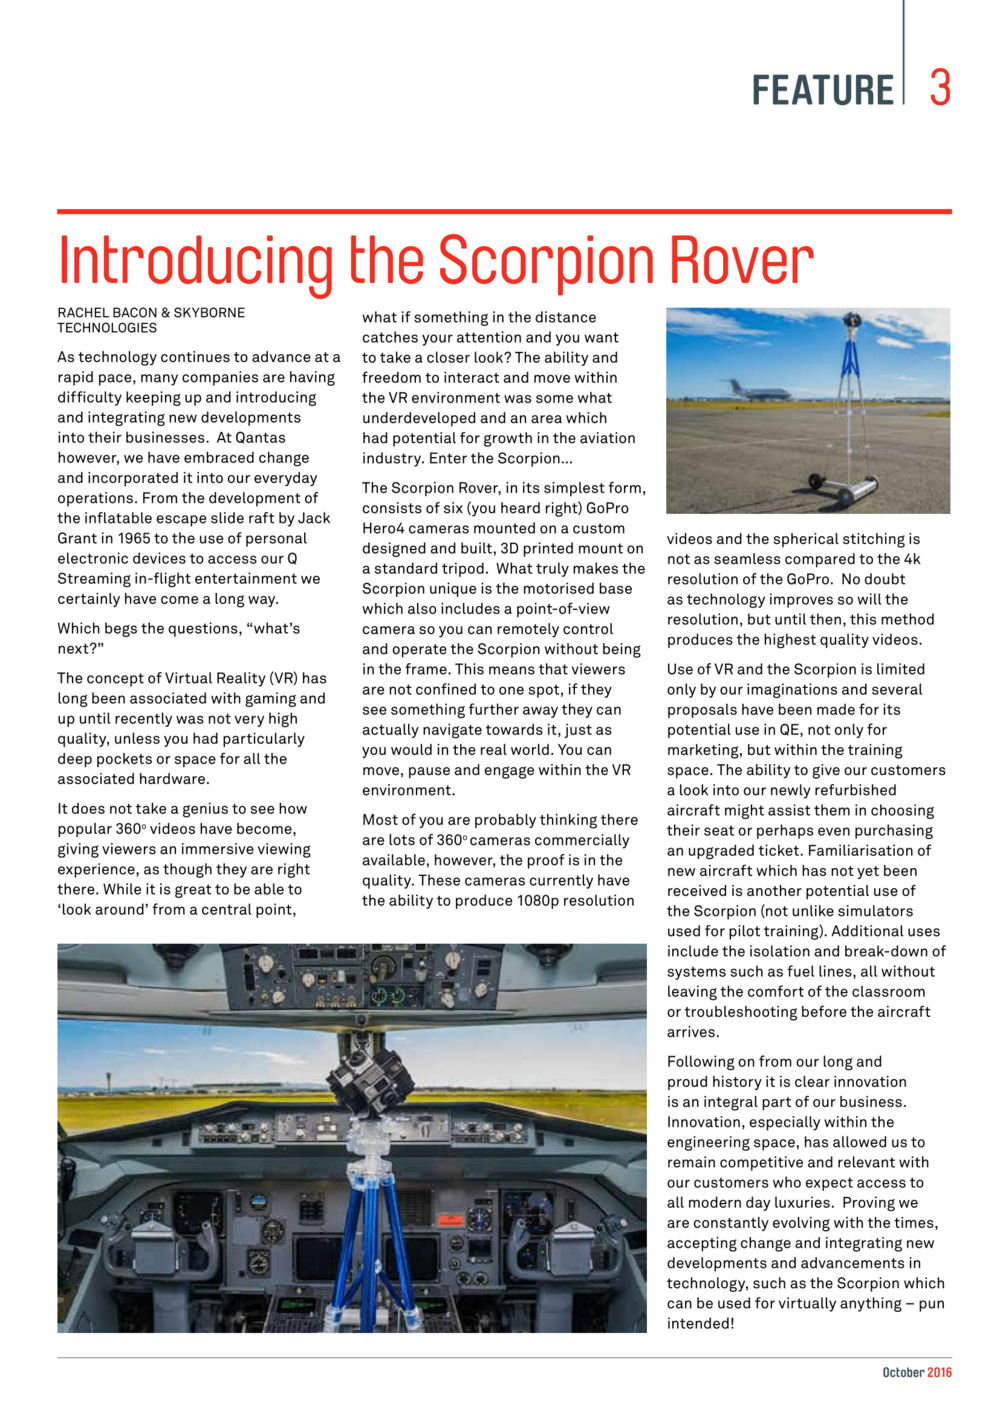 Skyborne technologies 'scorpion' vr rover product featured in qantas qtechtalk october 2016